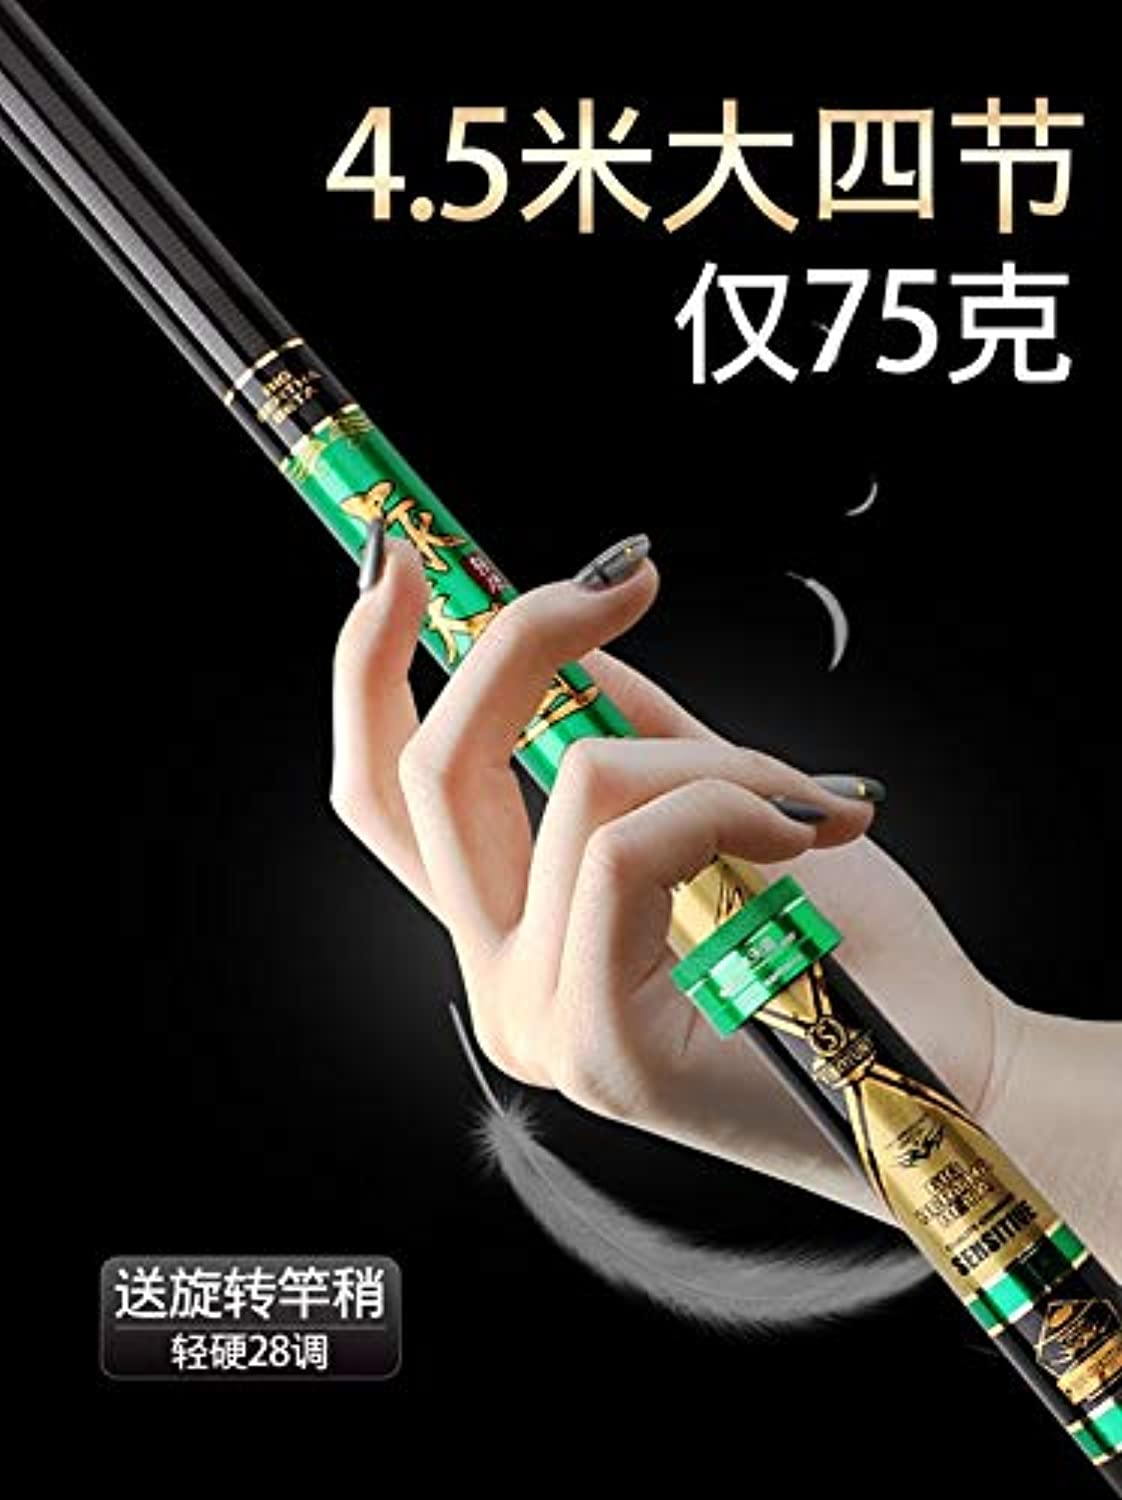 Fishing Rod Handcuffs Ultra Light Super Hard 28 Adjustment Japan Imported Carbon Taiwan Fishing Rod 5.4 Fishing Rod Hand Rod Squid Rod